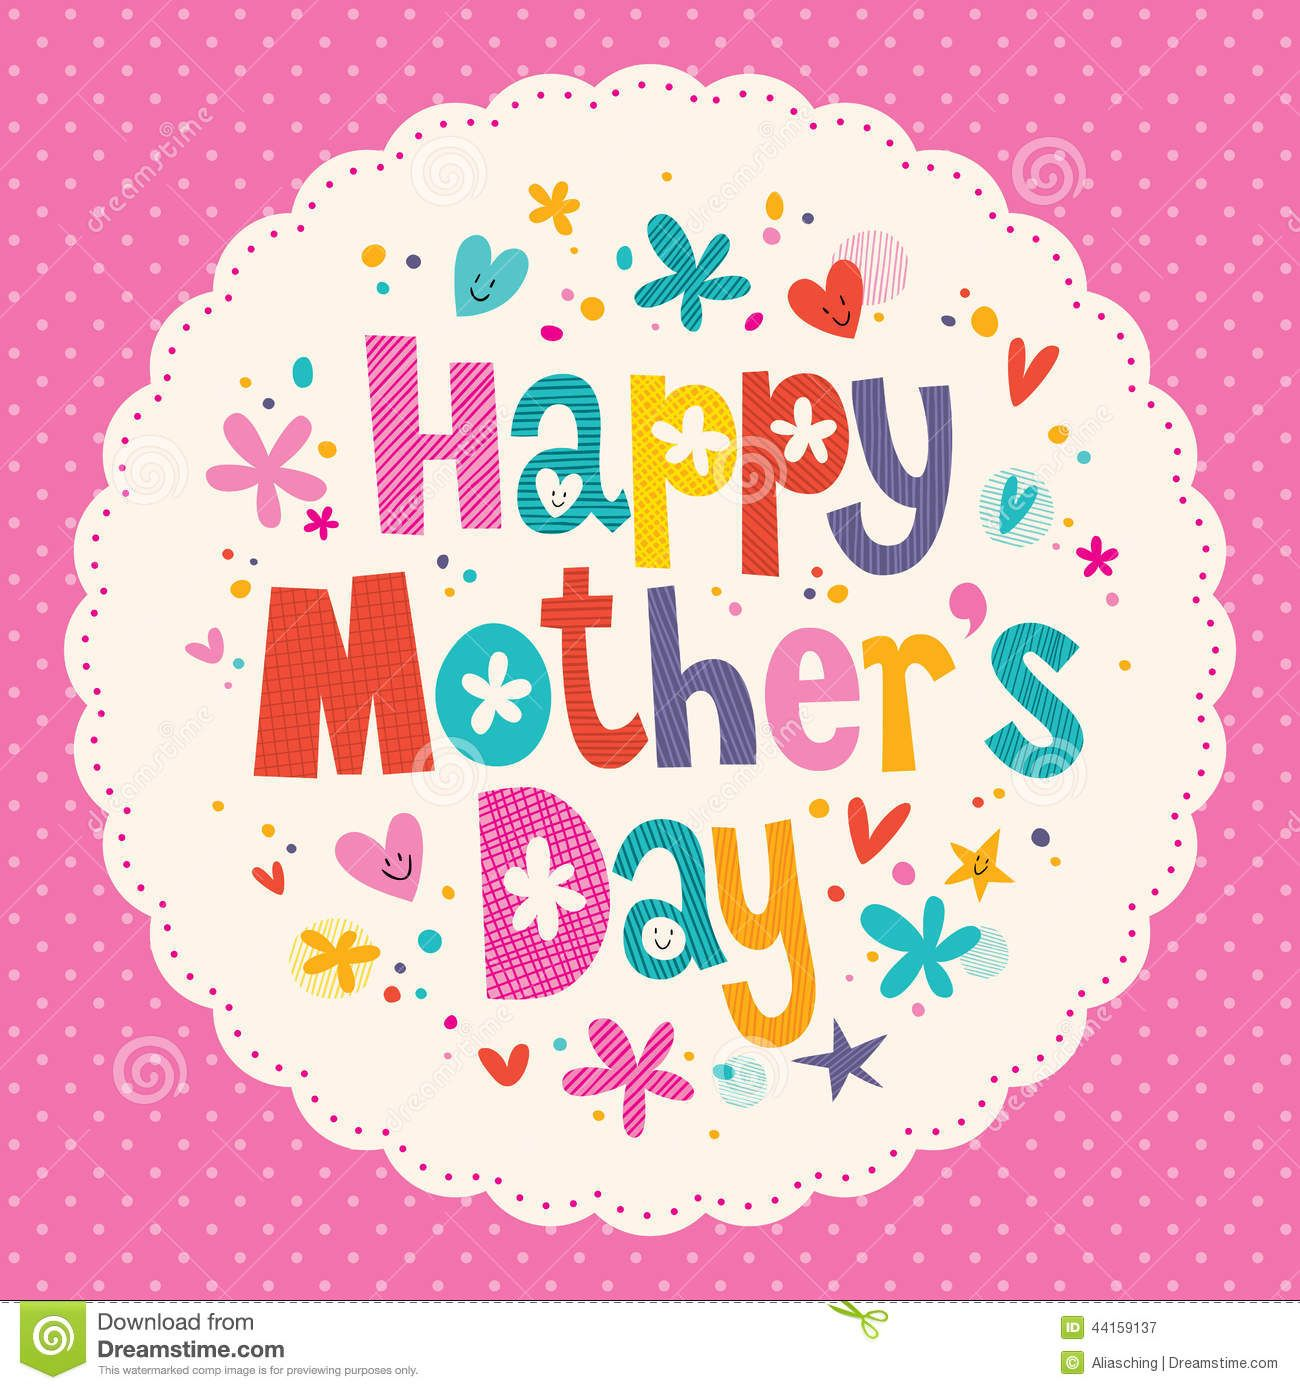 Mother day card designs anuvratfo mothers day pinterest mother day card designs anuvratfo kristyandbryce Image collections